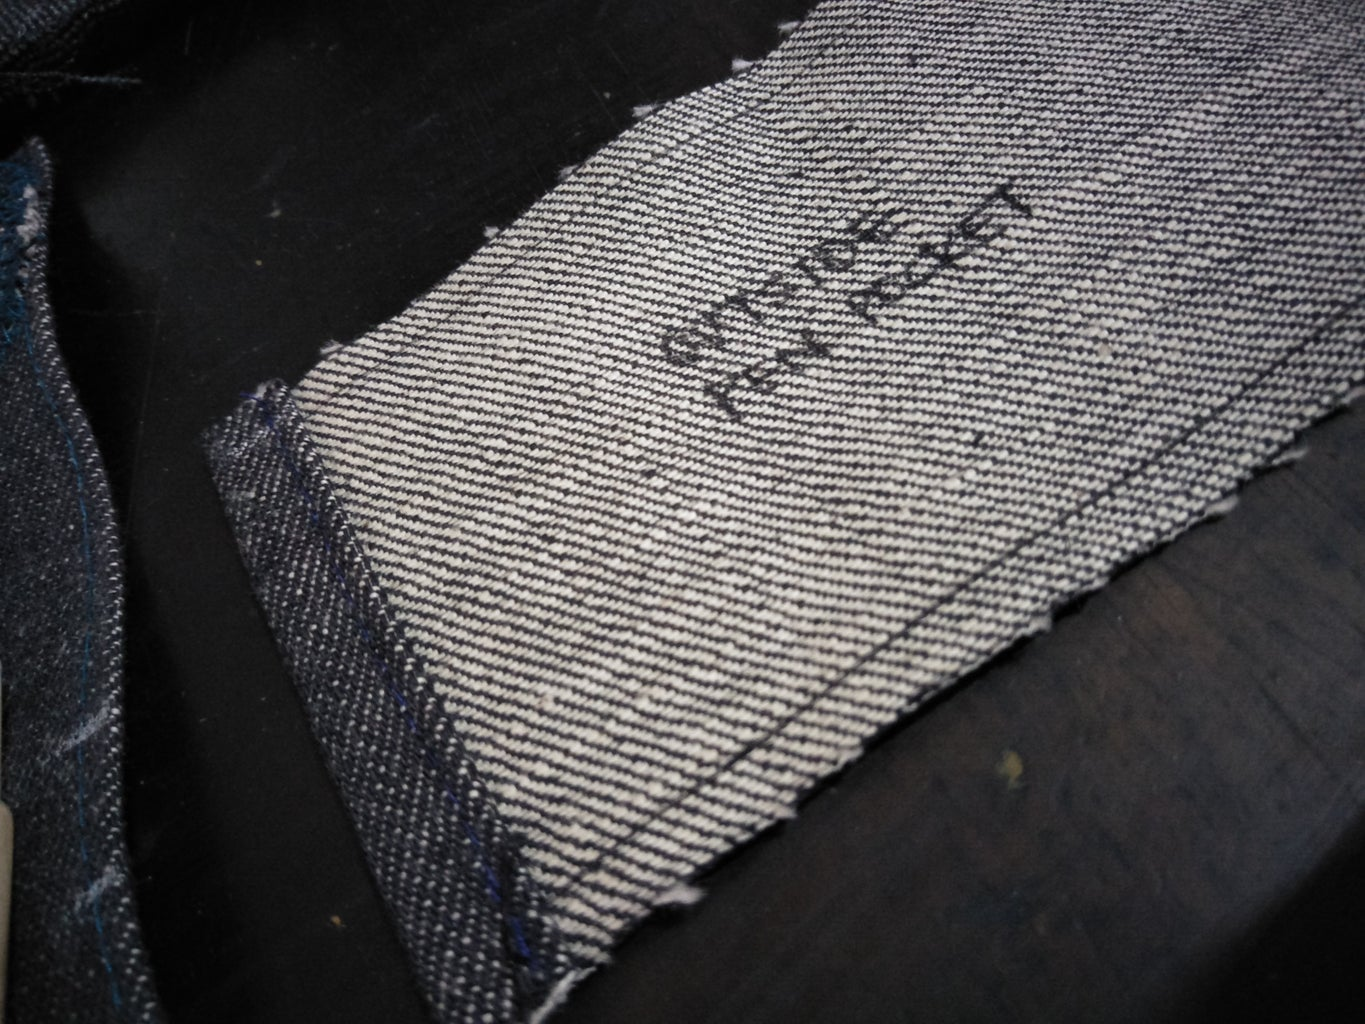 Erect and Sew the Tool Pockets